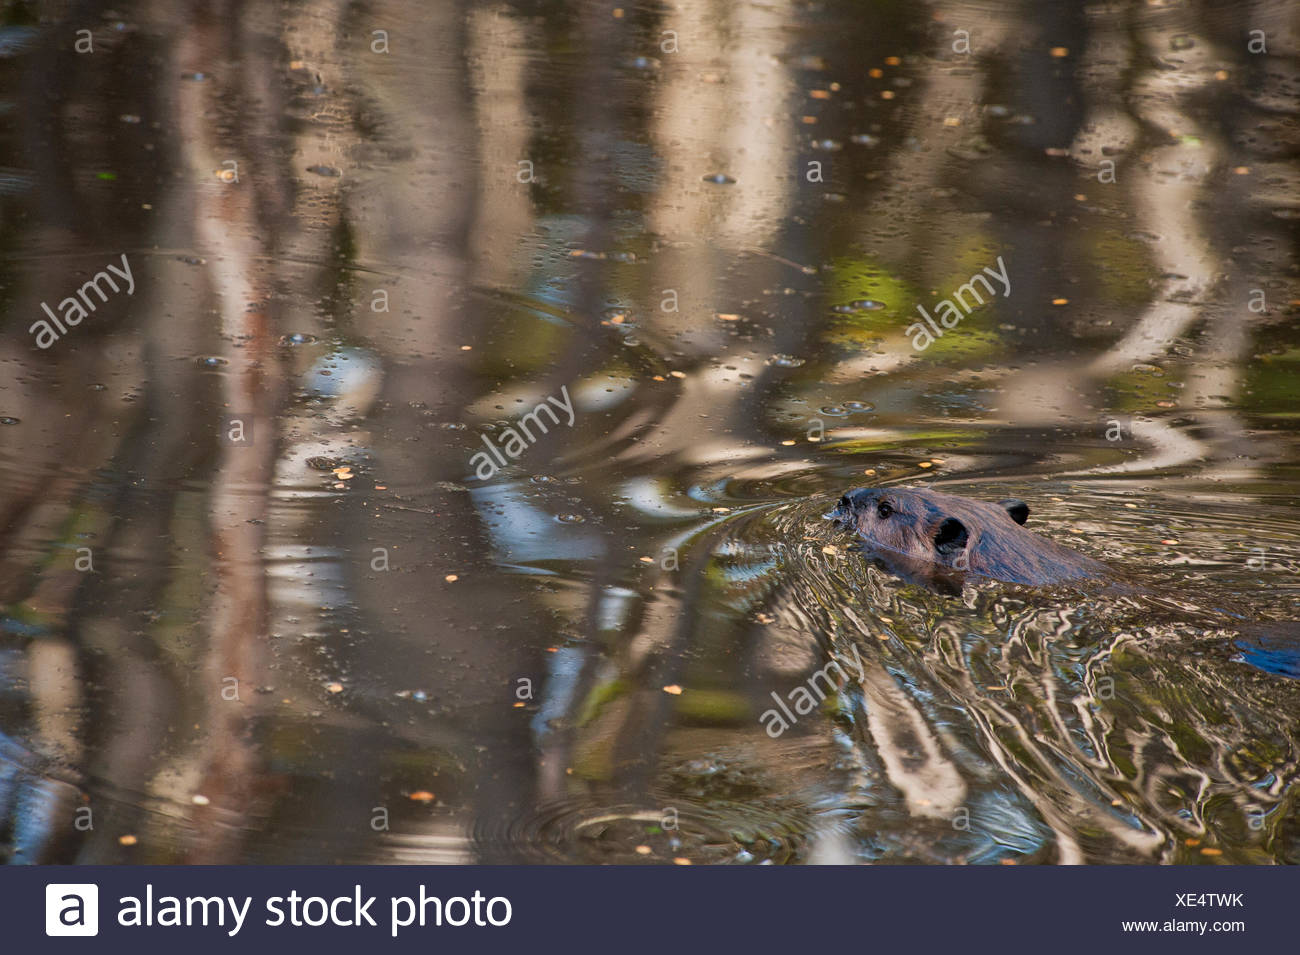 A beaver, Castor canadensis, swimming diagonally away from the camera. - Stock Image